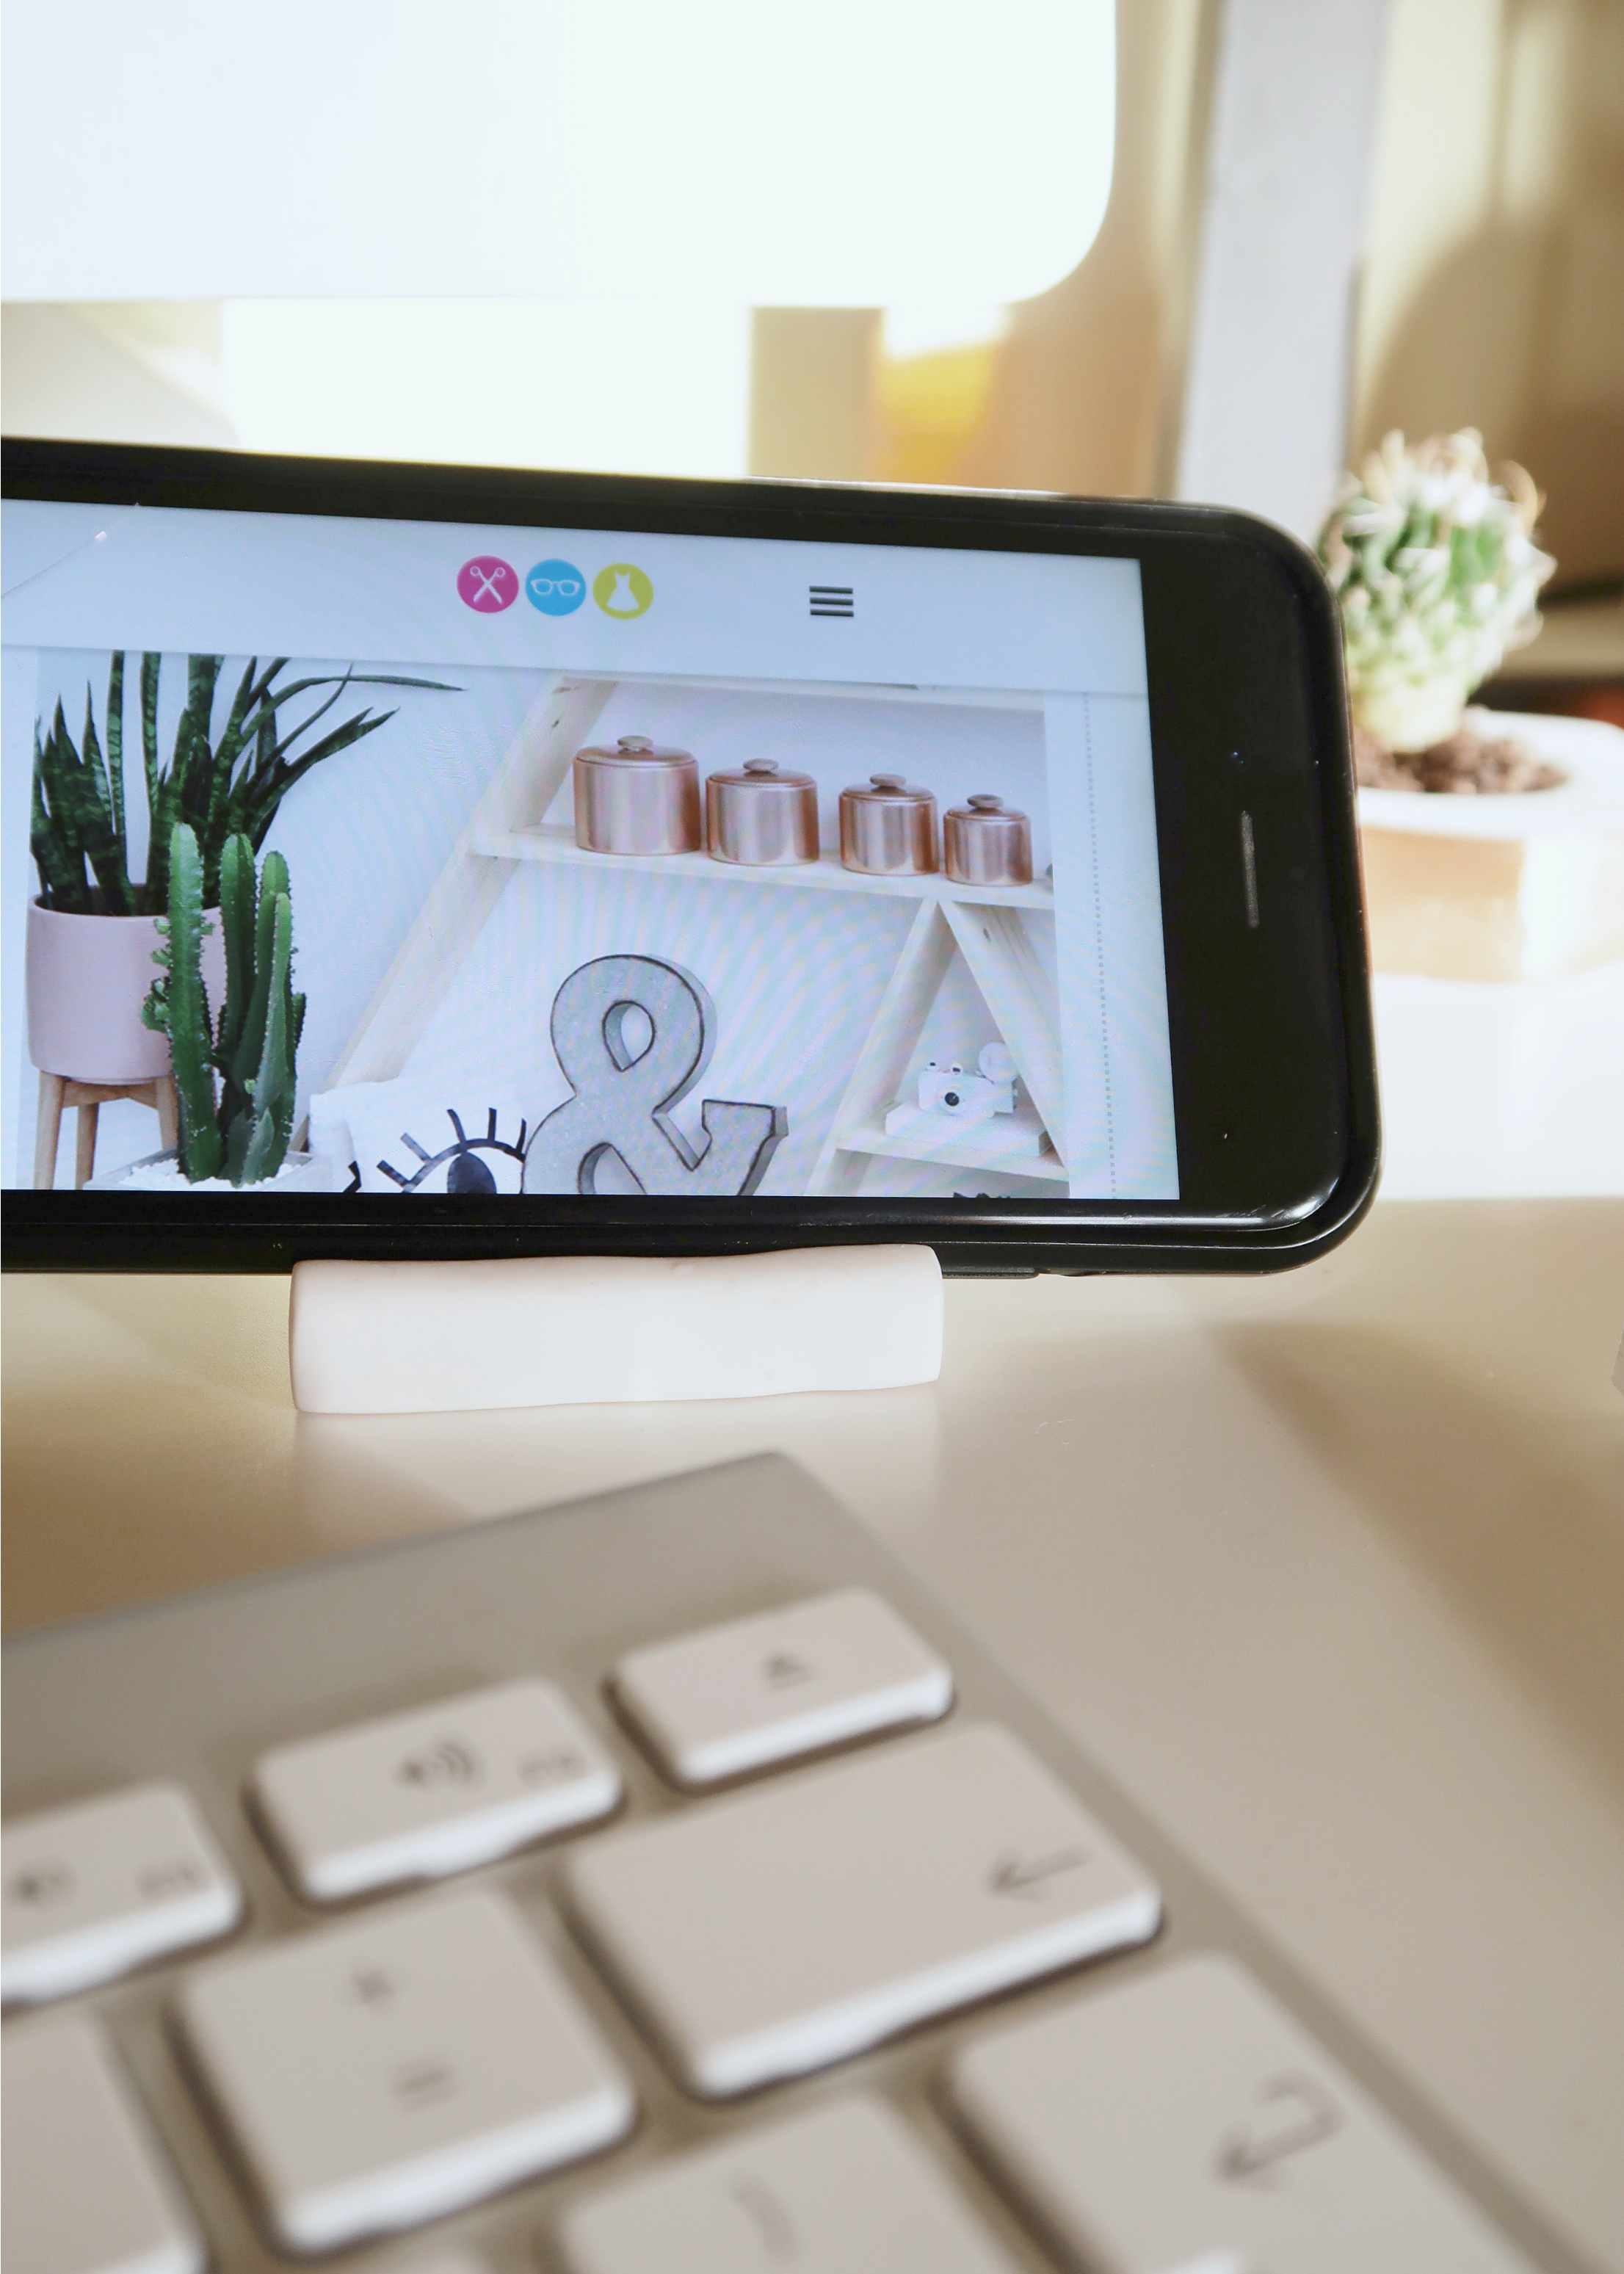 DIY Minimal Clay Phone Stand by Isoscella